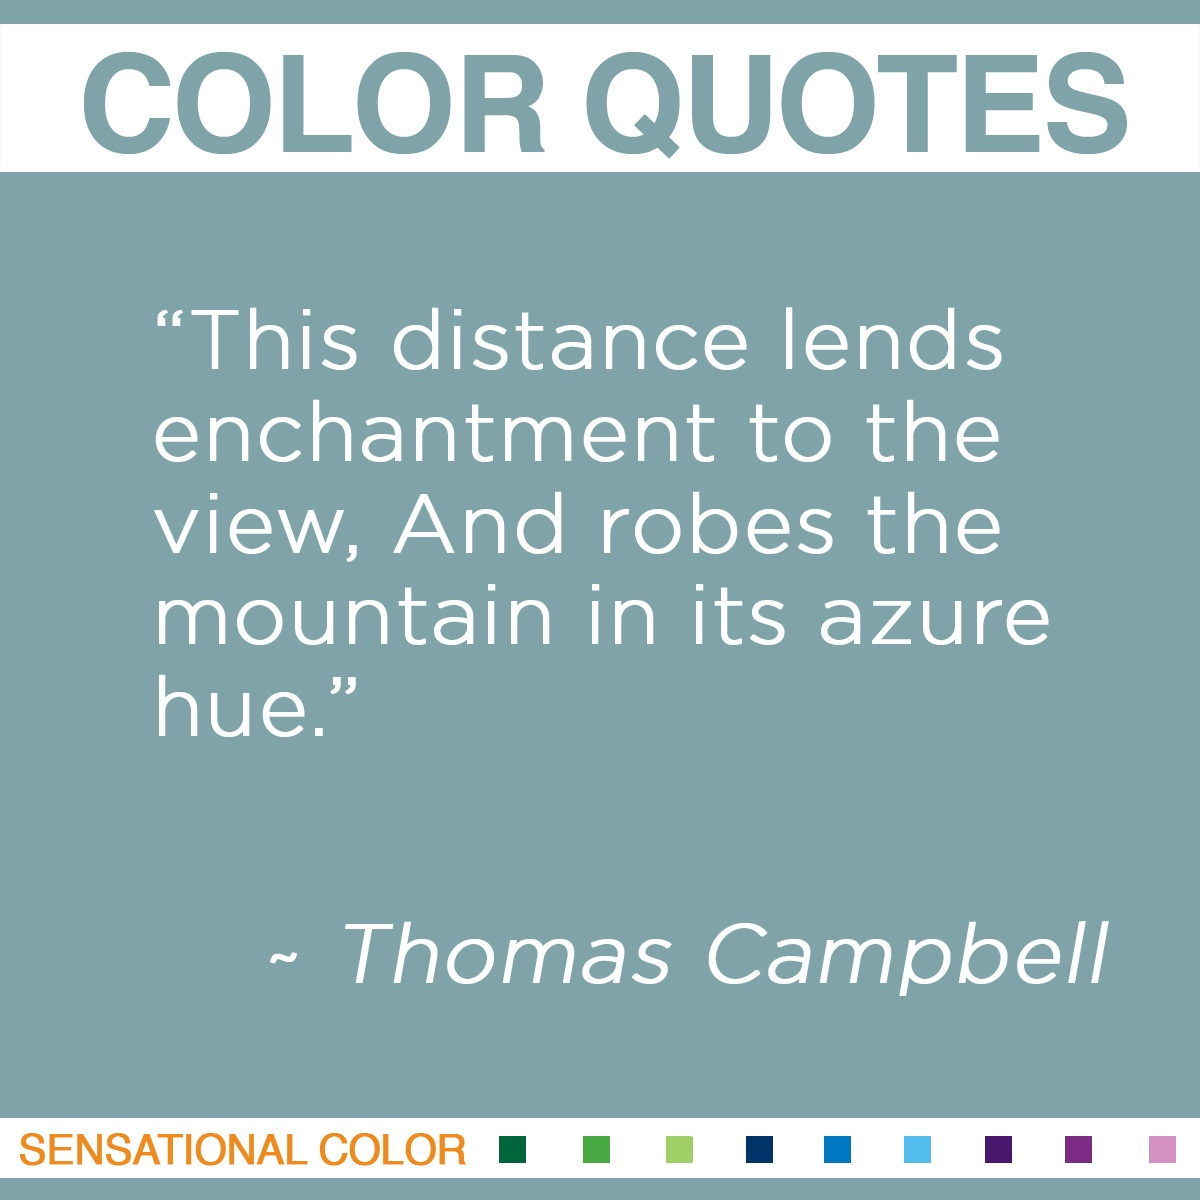 """This distance lends enchantment to the view, And robes the mountain in its azure hue."" - Thomas Campbell"